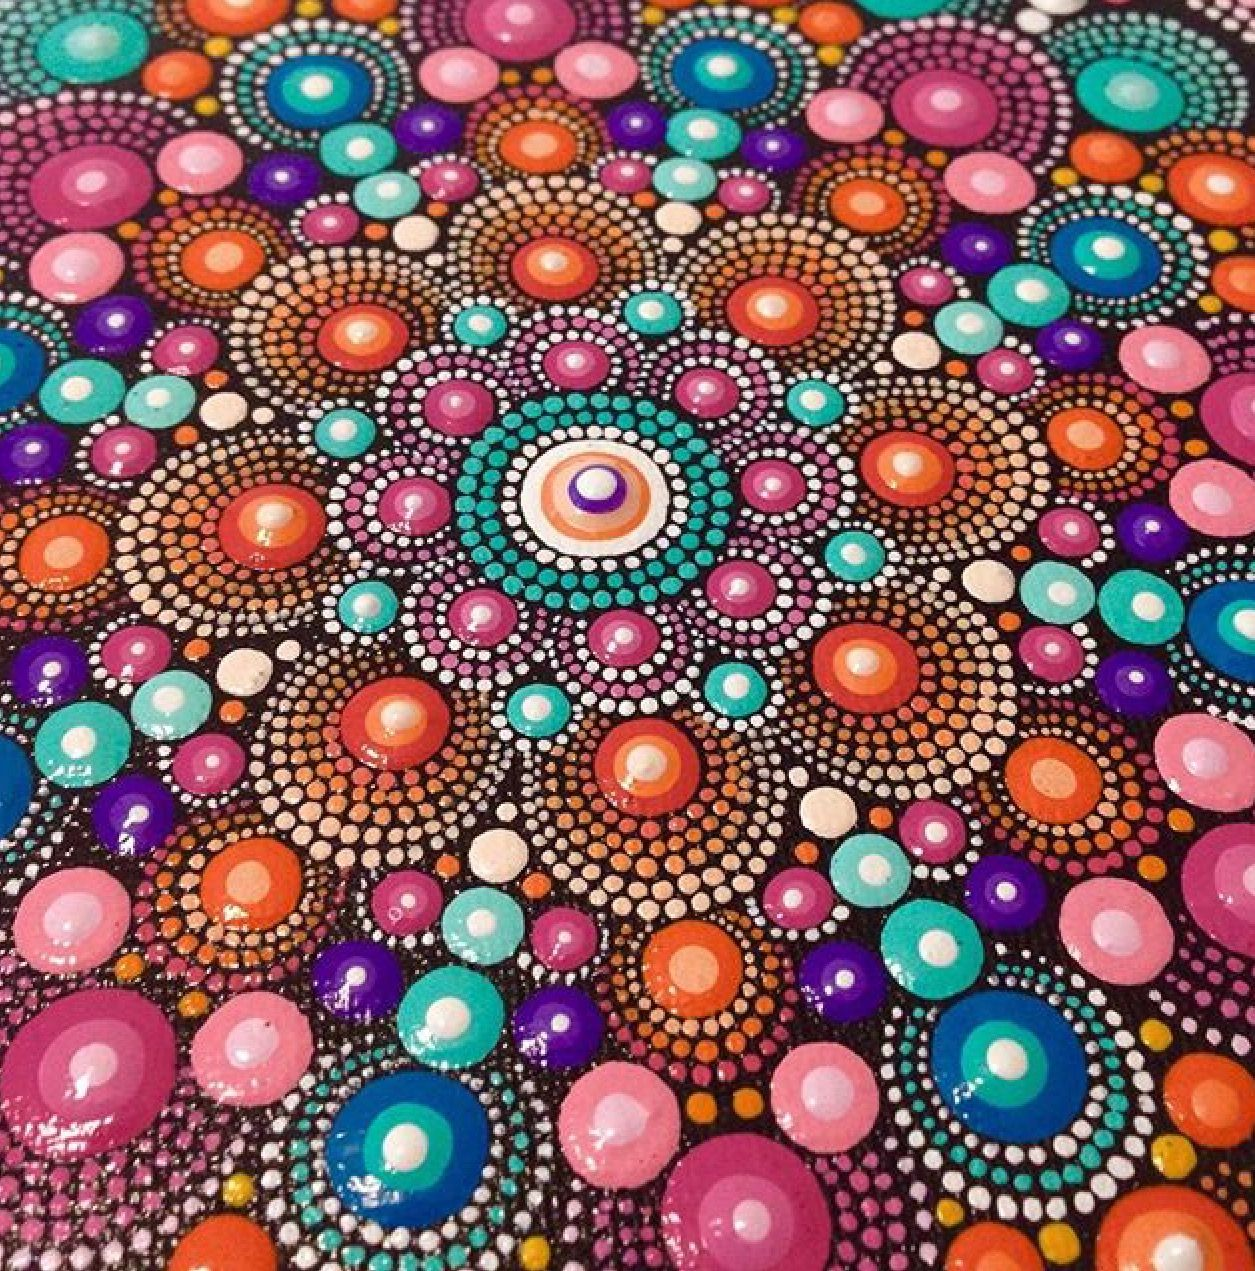 Pin by J C on Connect the Dots | Pinterest | Dot painting, Painting ...